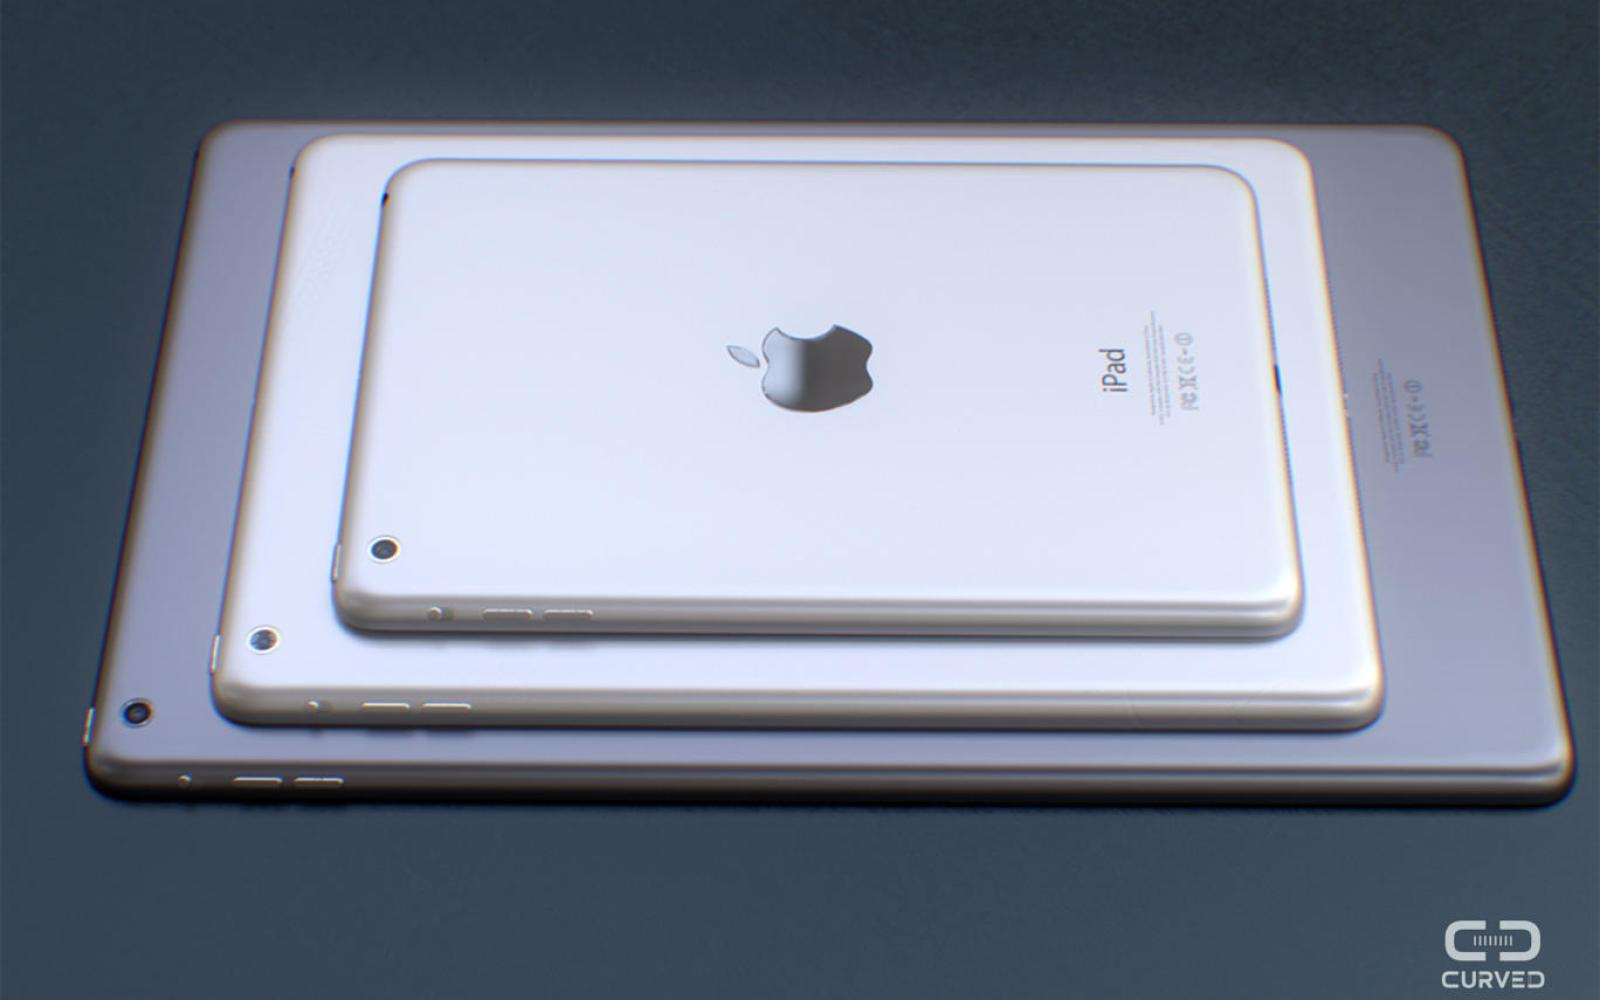 iPad Pro rumored specs: smaller 12.2-inch display, 7mm thickness, Left/right stereo speakers